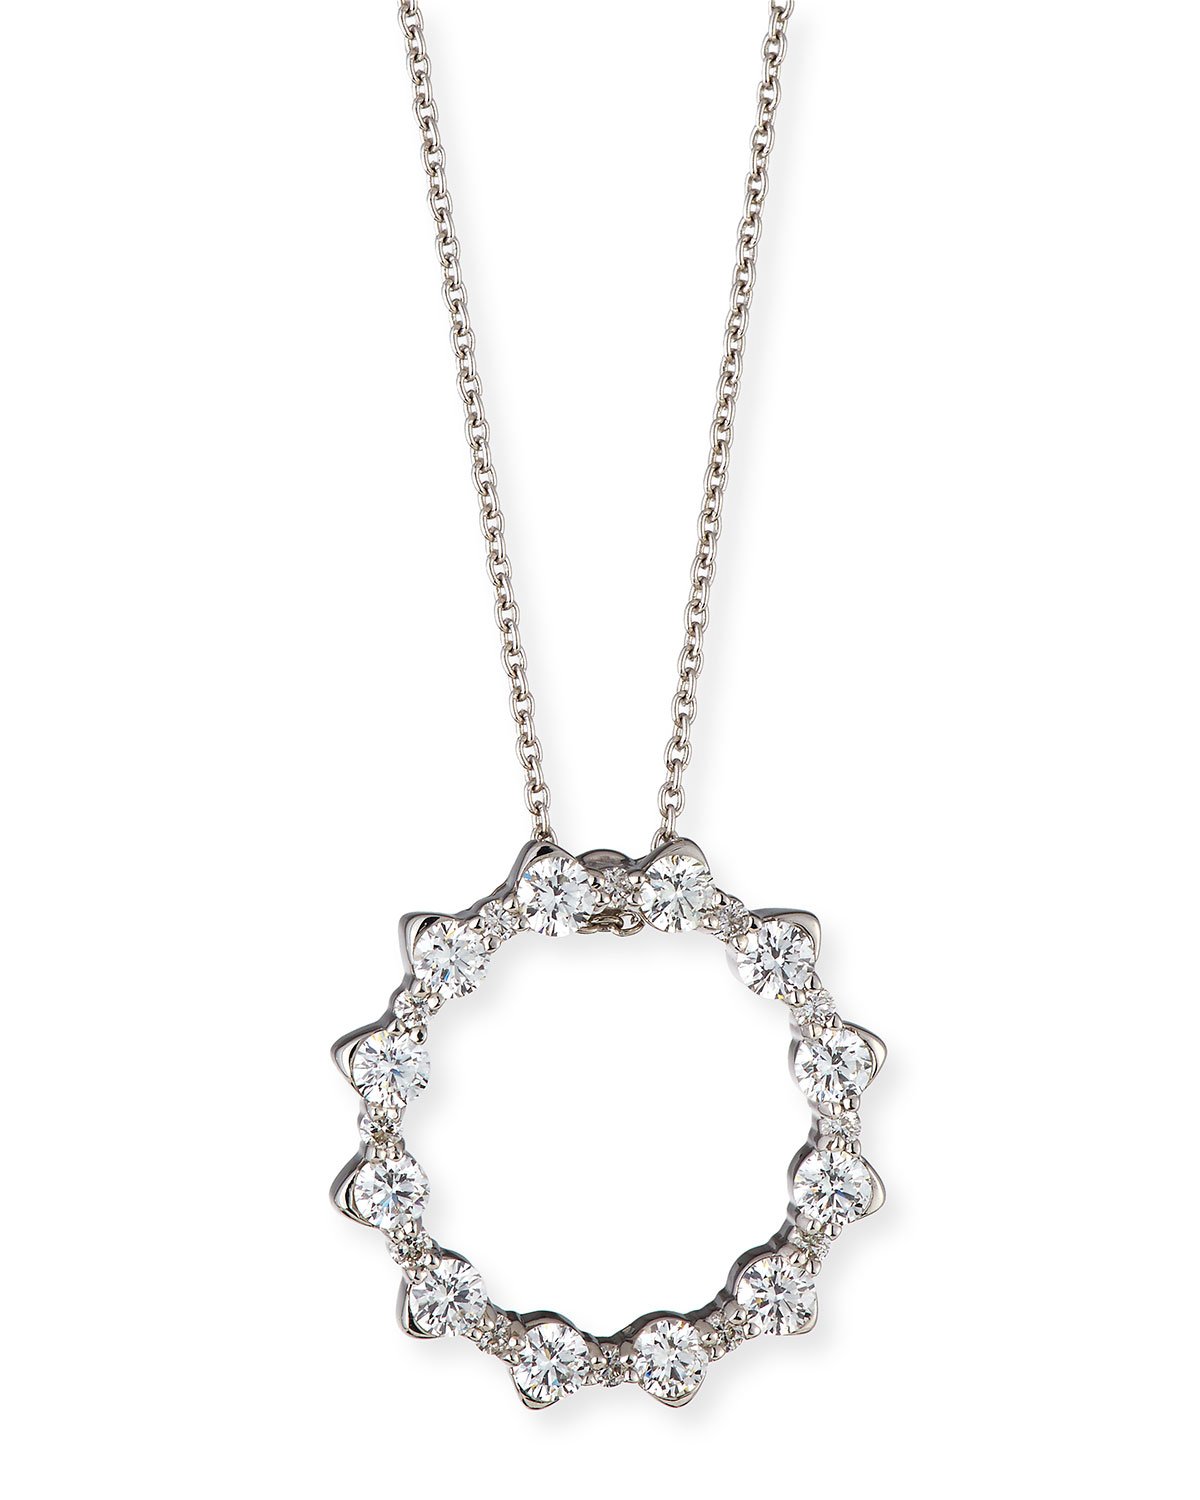 Gold circle necklace neiman marcus quick look roberto coin alternating diamond circle pendant necklace in 18k white gold aloadofball Gallery